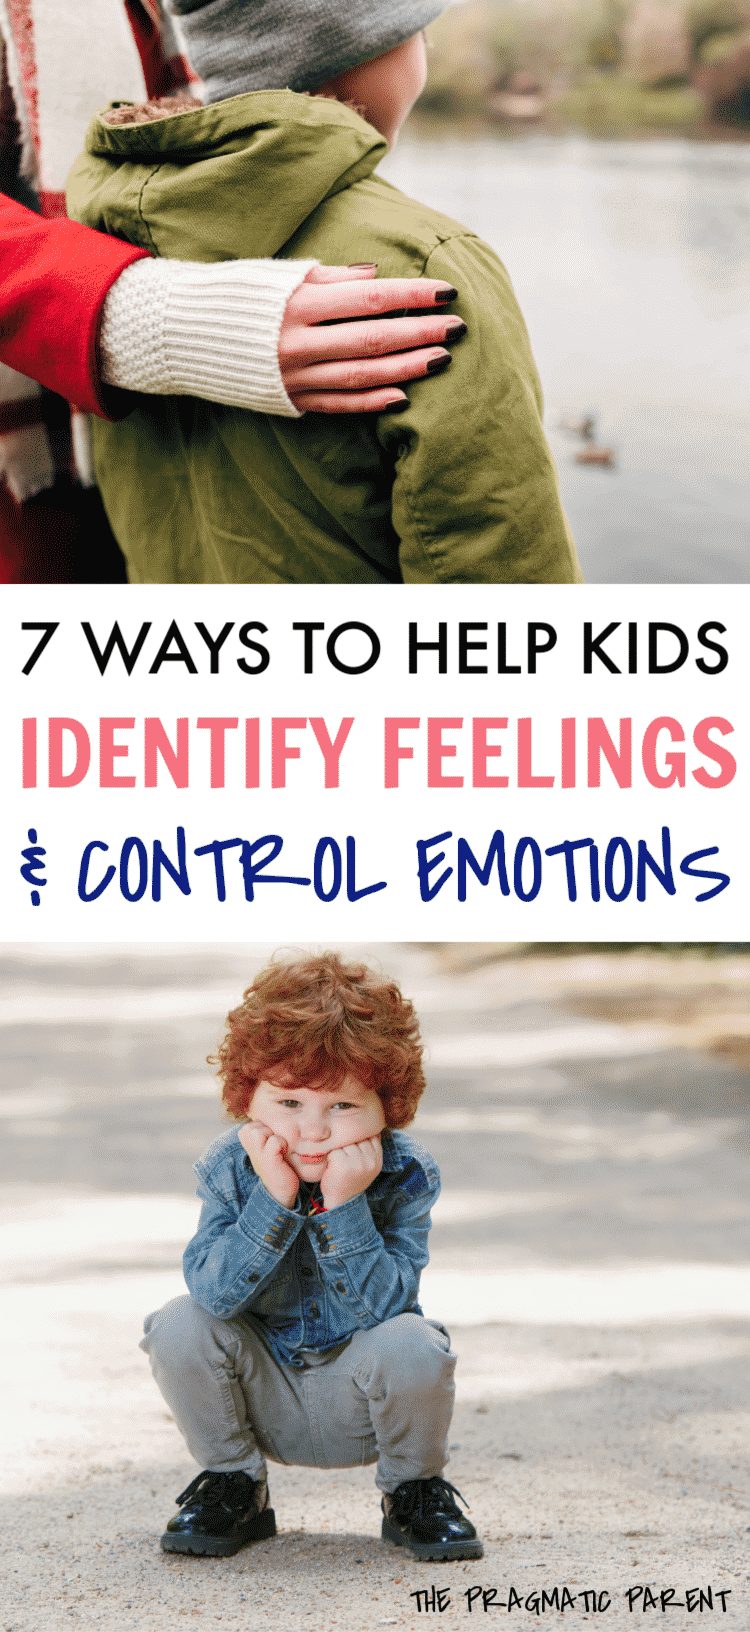 How to help kids identify and express their emotions, and also manage those feelings while controlling their emotions in a healthy, respectful way. #emotionalintelligence #helpkidsidentifyfeelings #teachselfregulation #kidscontrolemotions #kidsselfregulation #selfregulationgames